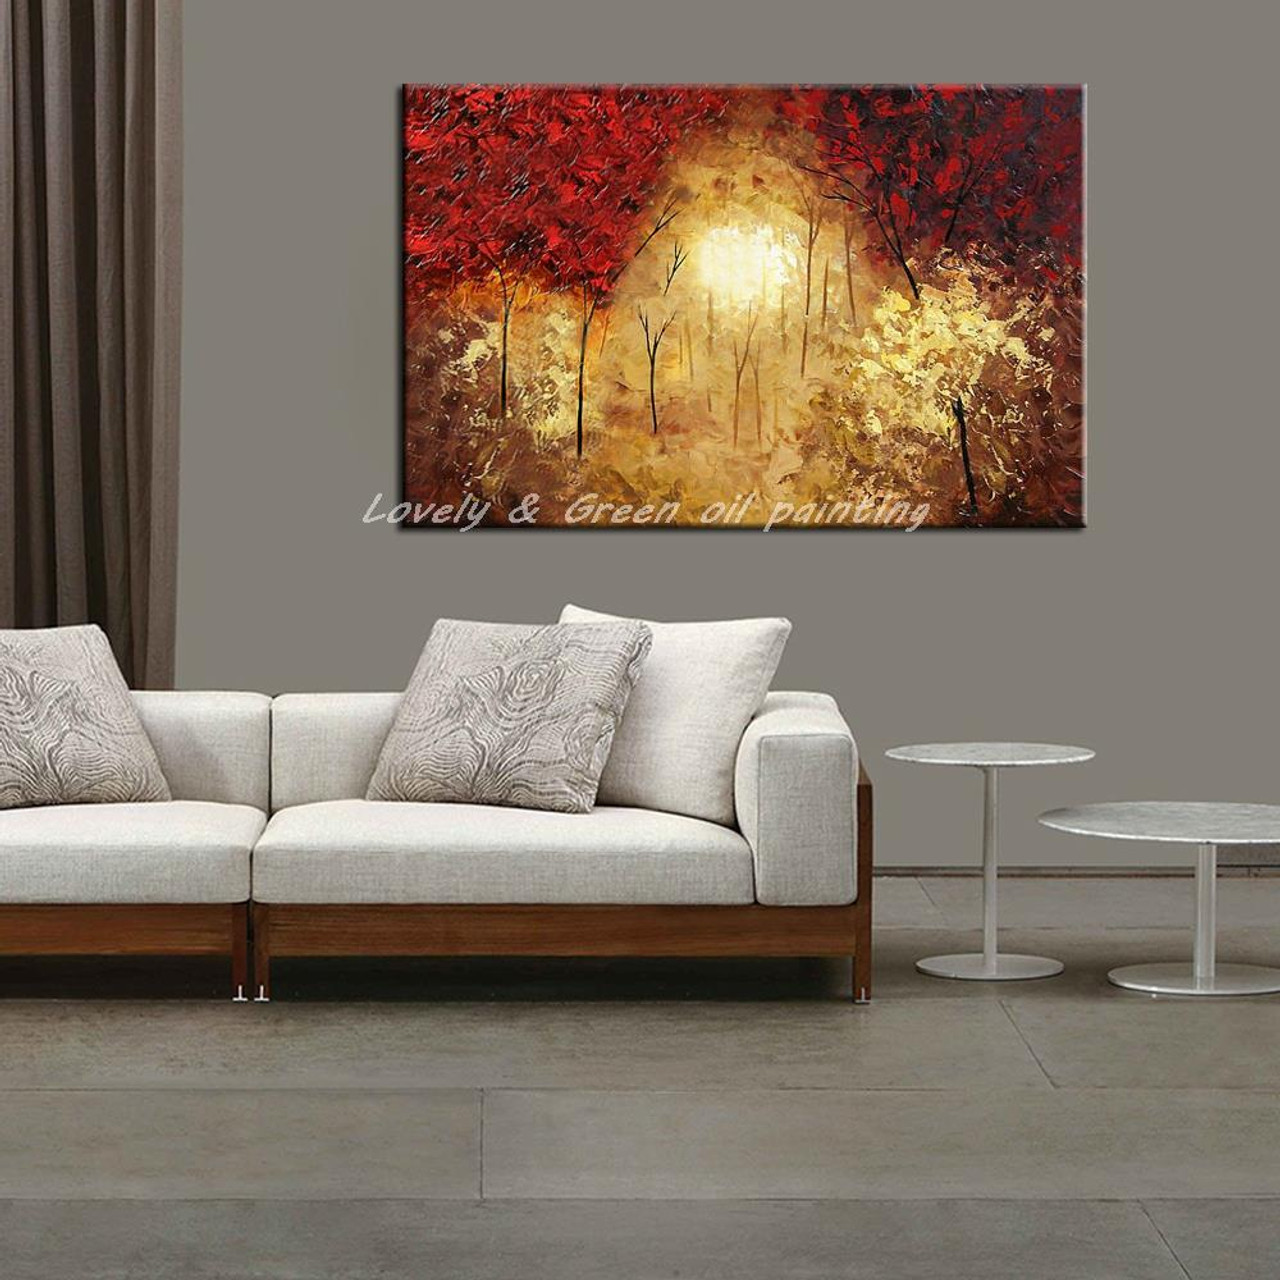 Living Room Bedroom Art Oil Painting Modern 100/% Hand-Painted Home Decoration Color Abstract Landscape Canvas Painting 40x64inch Without a frame-100x160cm Wall Art Oil Painting